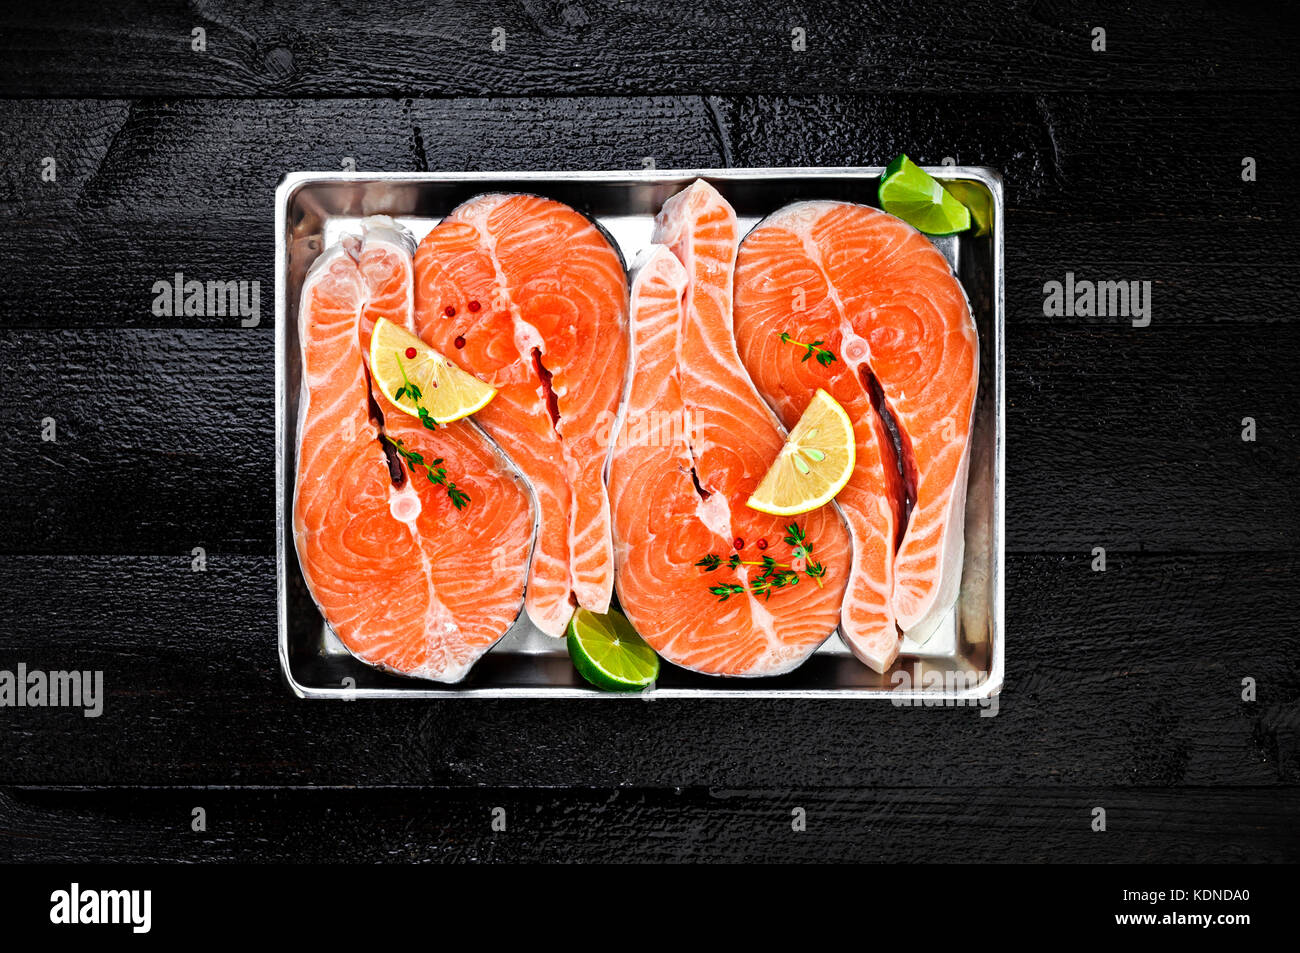 Salmon steaks on metal tray on black wooden table top view - Stock Image